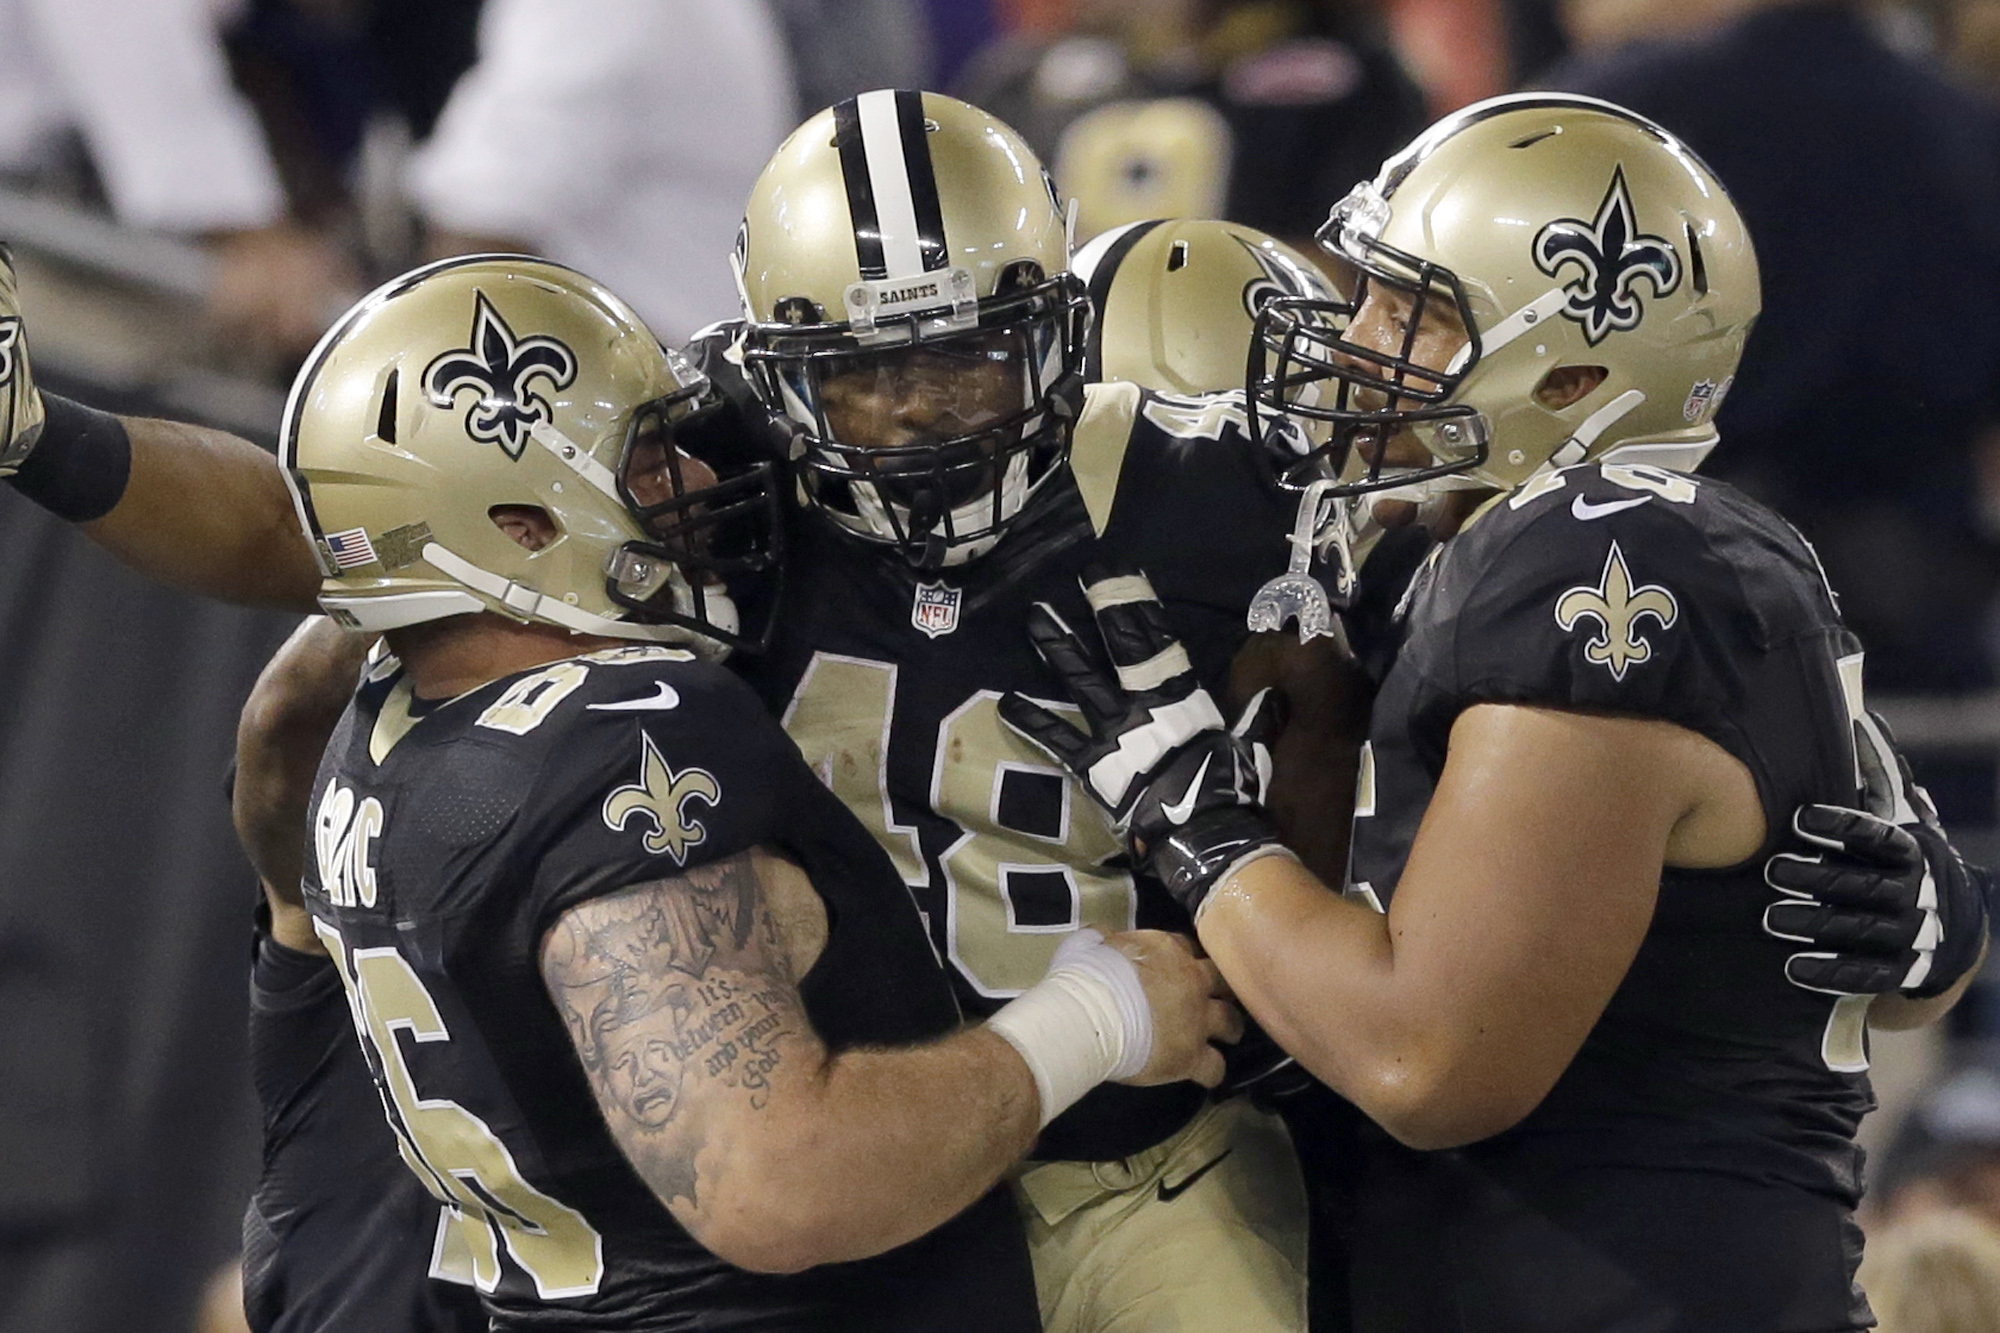 New Orleans Saints running back Marcus Murphy, center, is congratulated by teammates Mike Golic Jr., left, and offensive tackle Andrus Peat, right, after scoring a touchdown during the second half of an NFL preseason football game against the Baltimore Ra